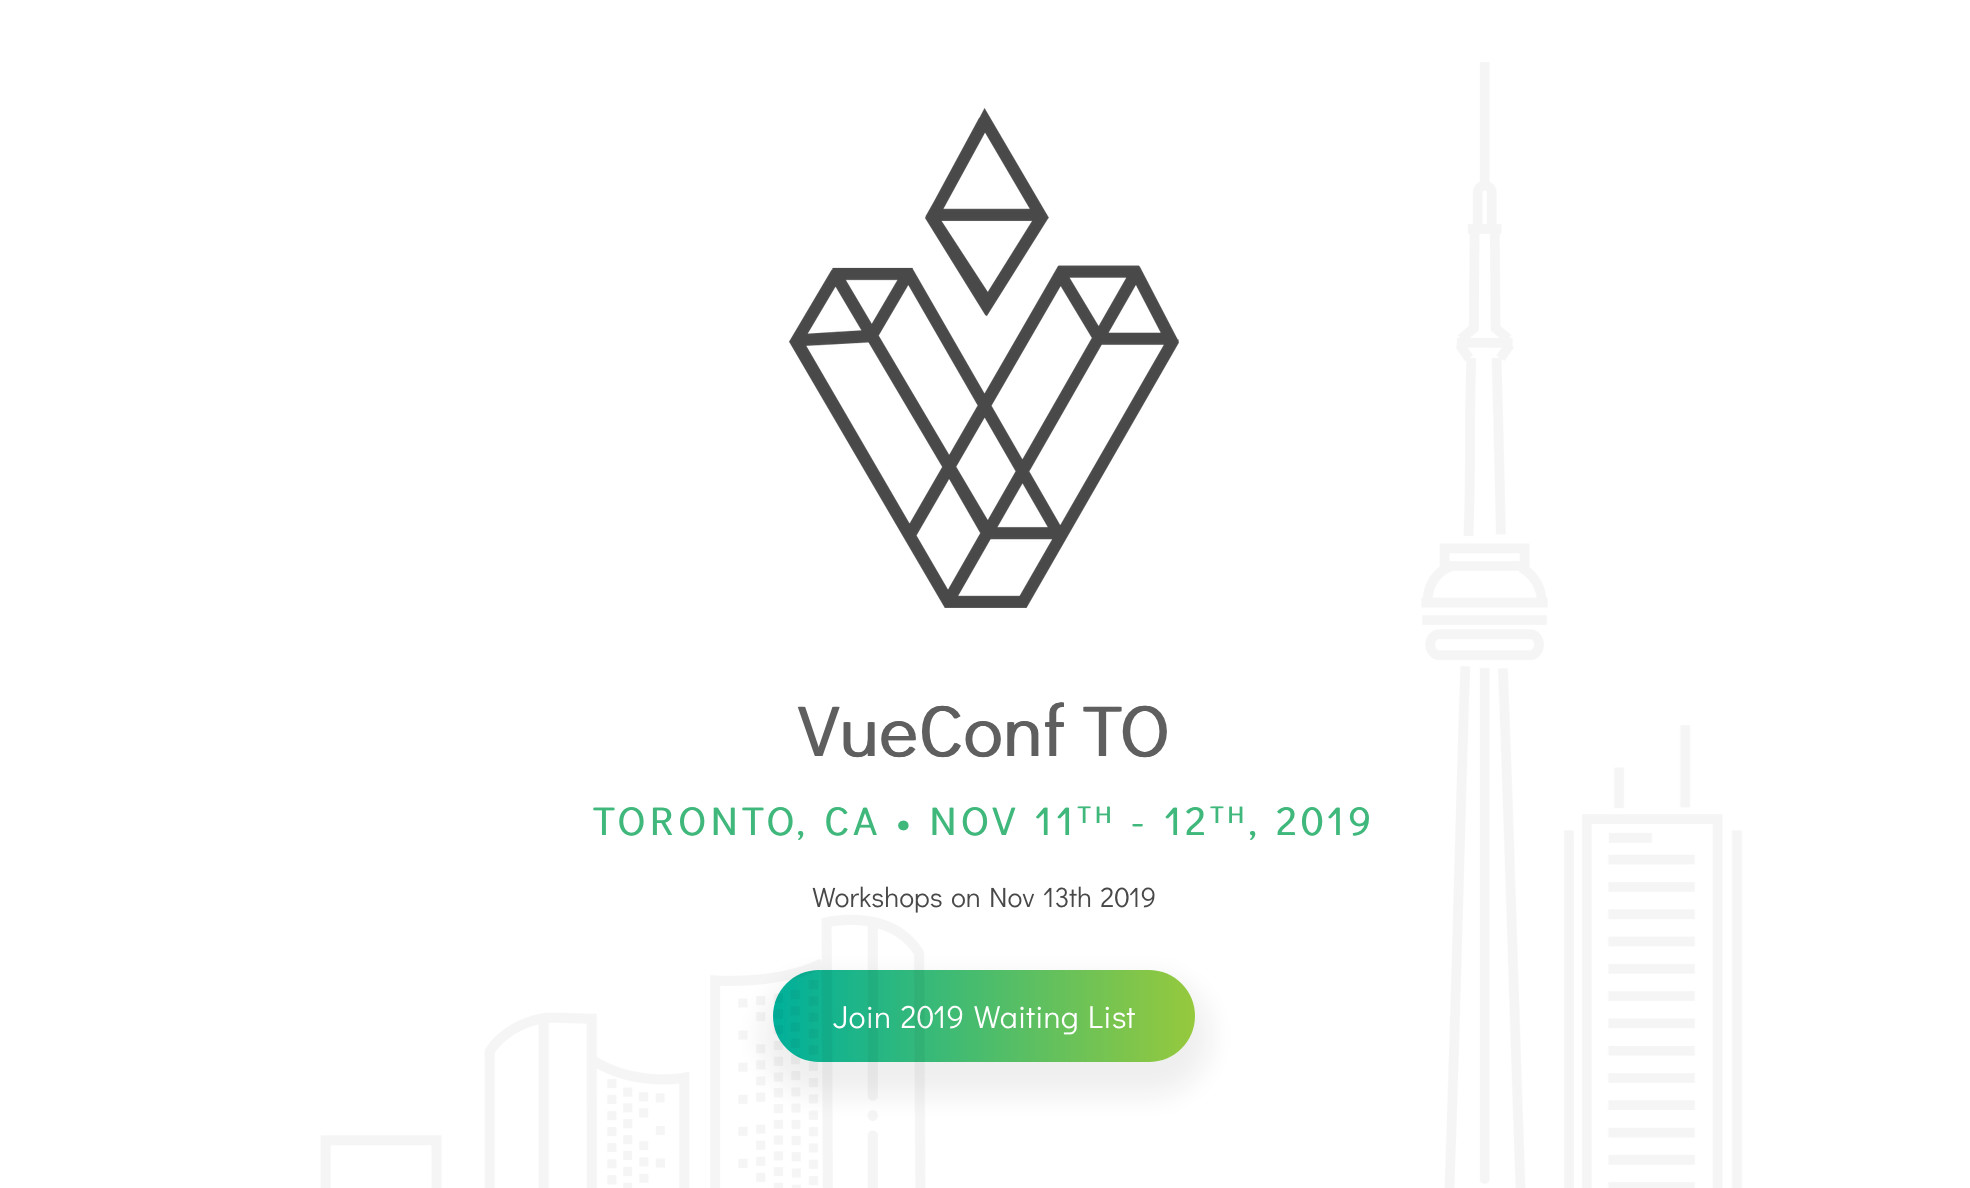 VueConfTO 2019 - Call For Papers